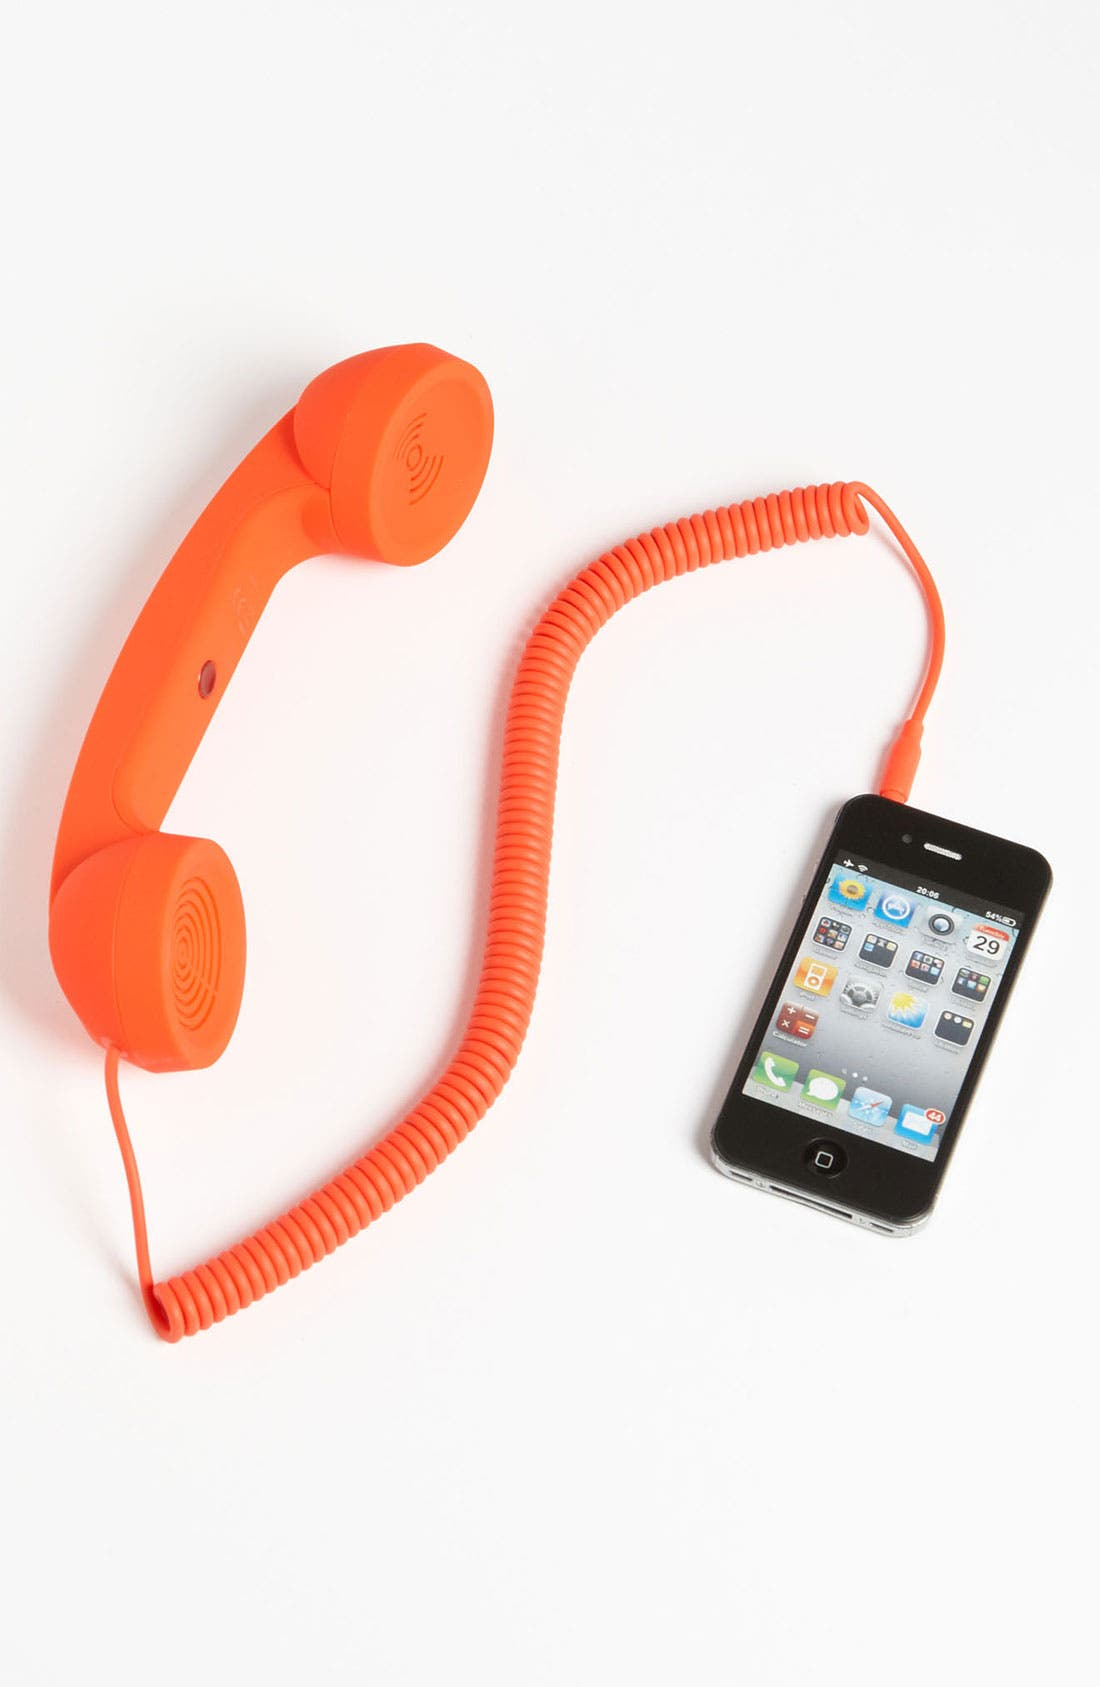 Alternate Image 1 Selected - Native Union 'Neon Pop Phone' Handset